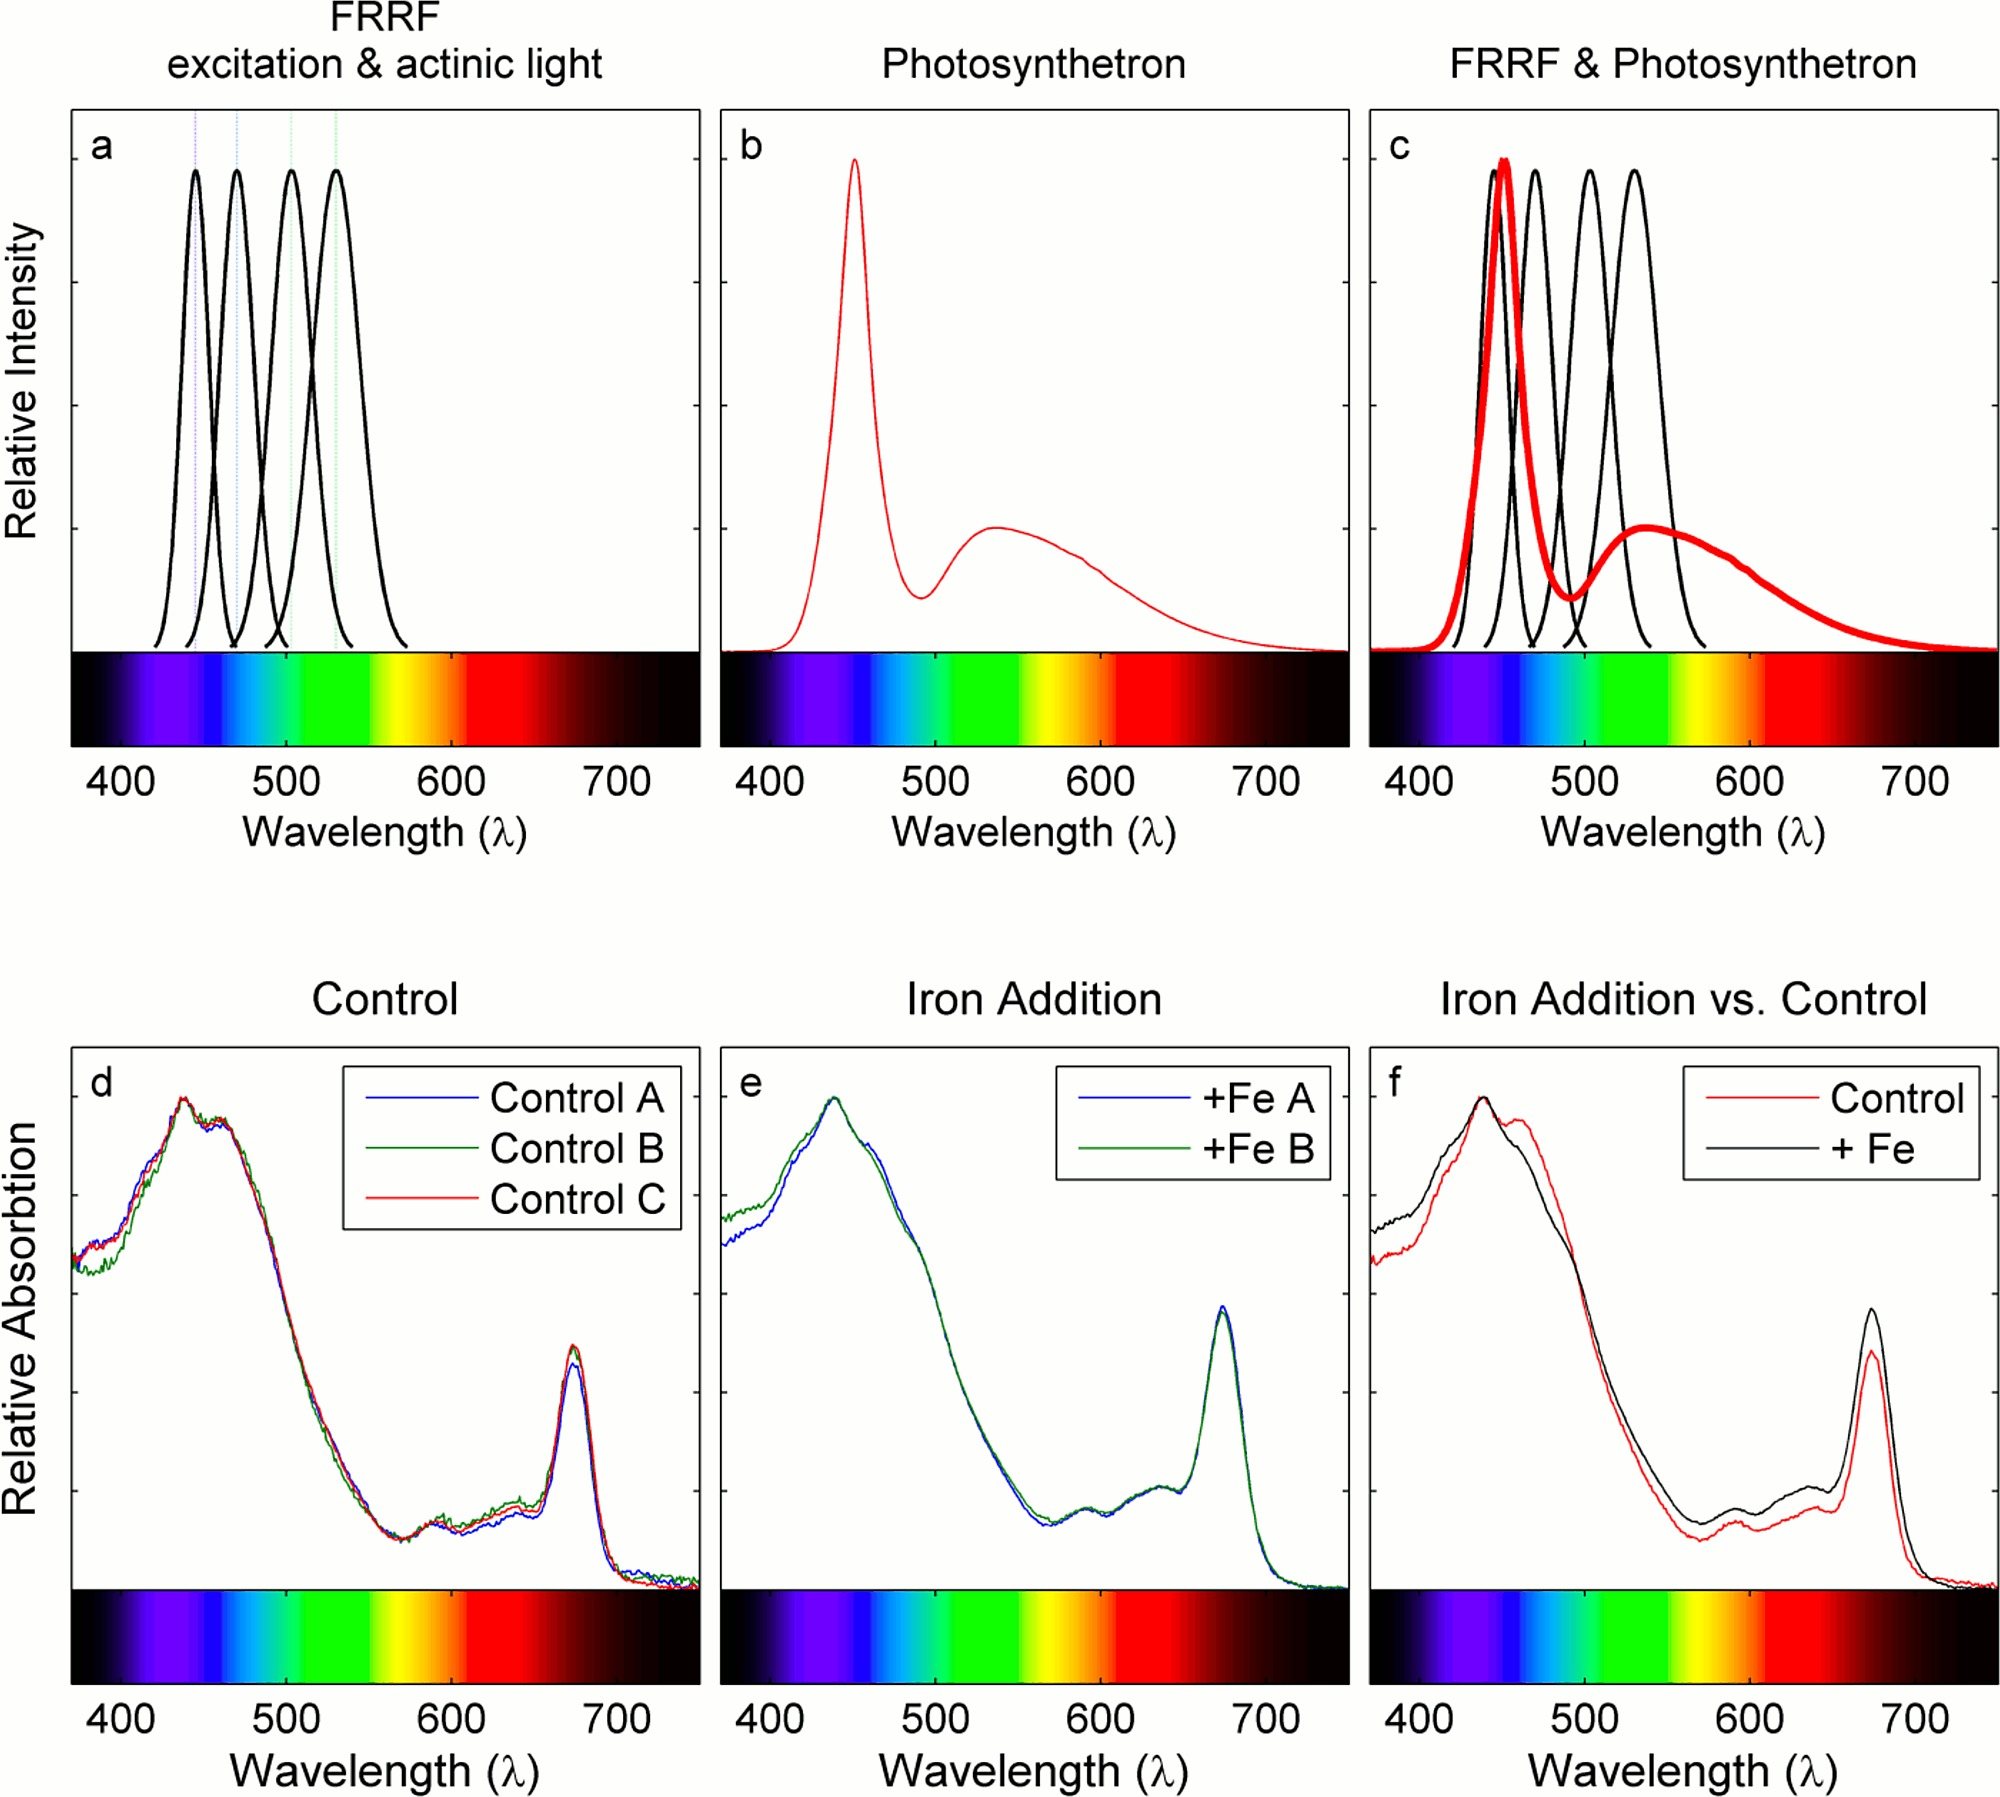 Interacting Effects Of Light And Iron Availability On The Coupling